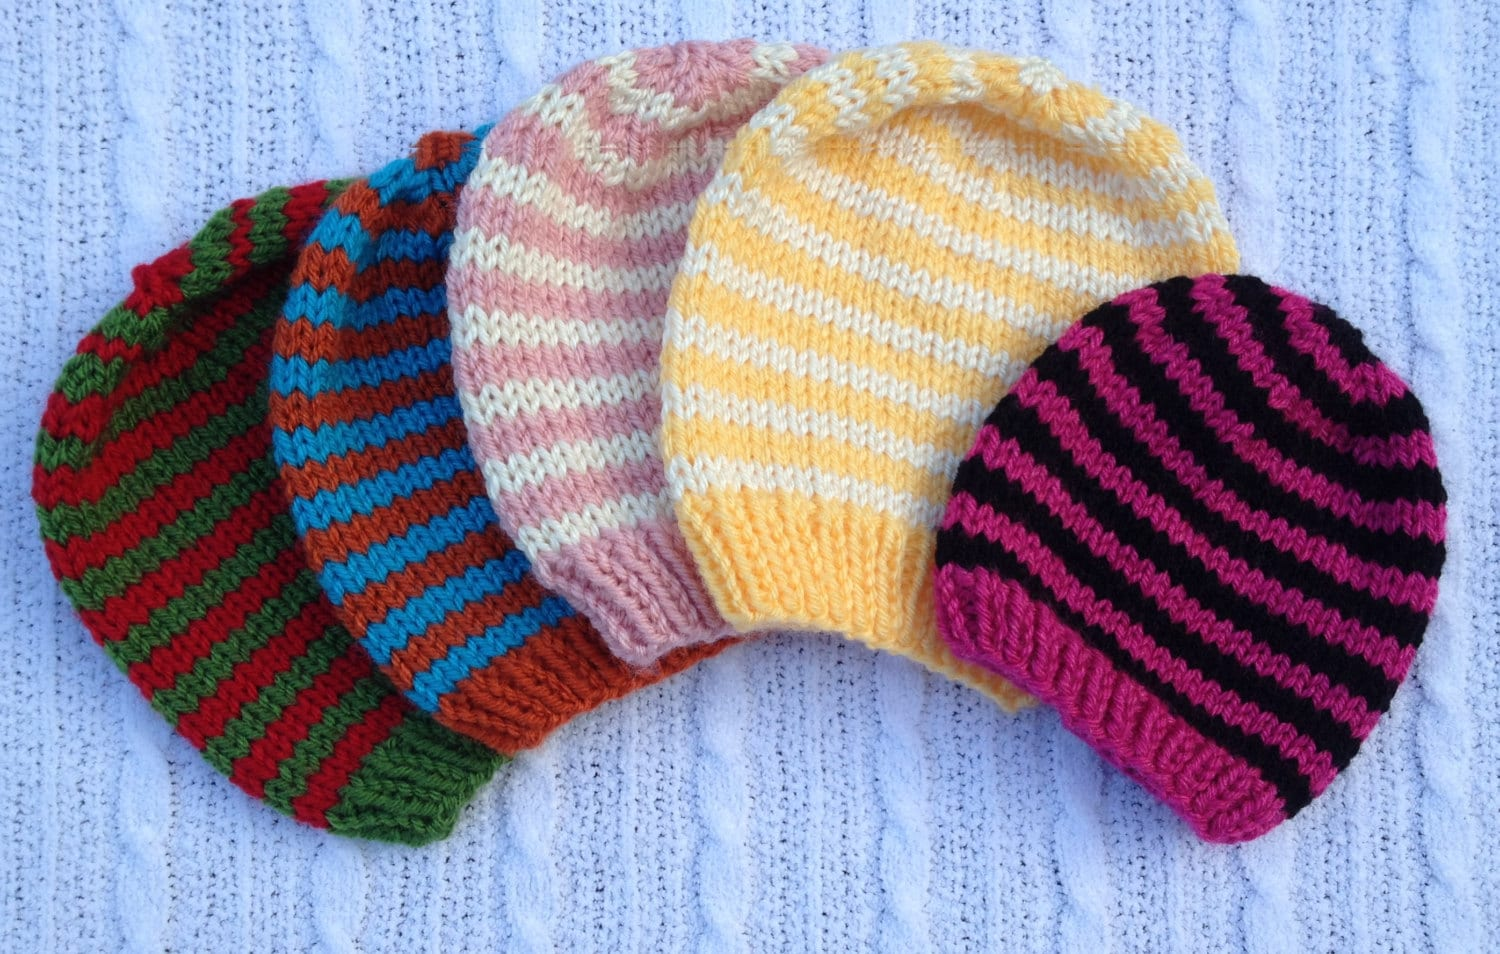 Newborn Beanie Knitting Pattern : PDF knitting pattern Basic simple baby beanie hat